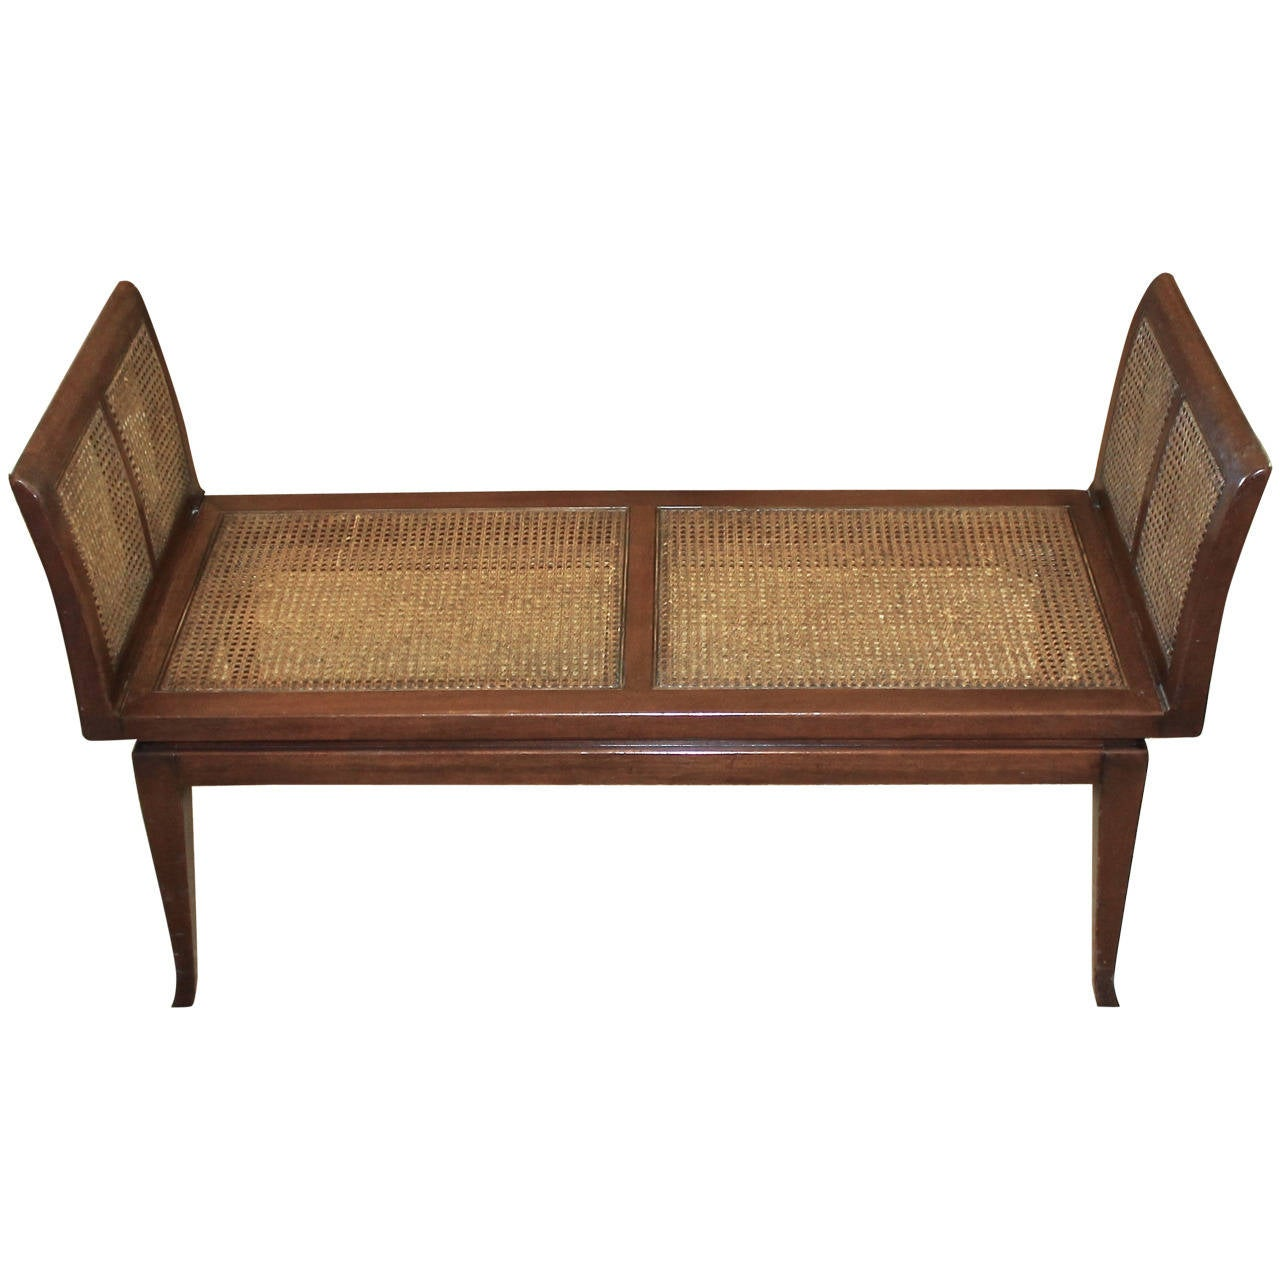 dunbar style midcentury wood cane bench for sale at 1stdibs